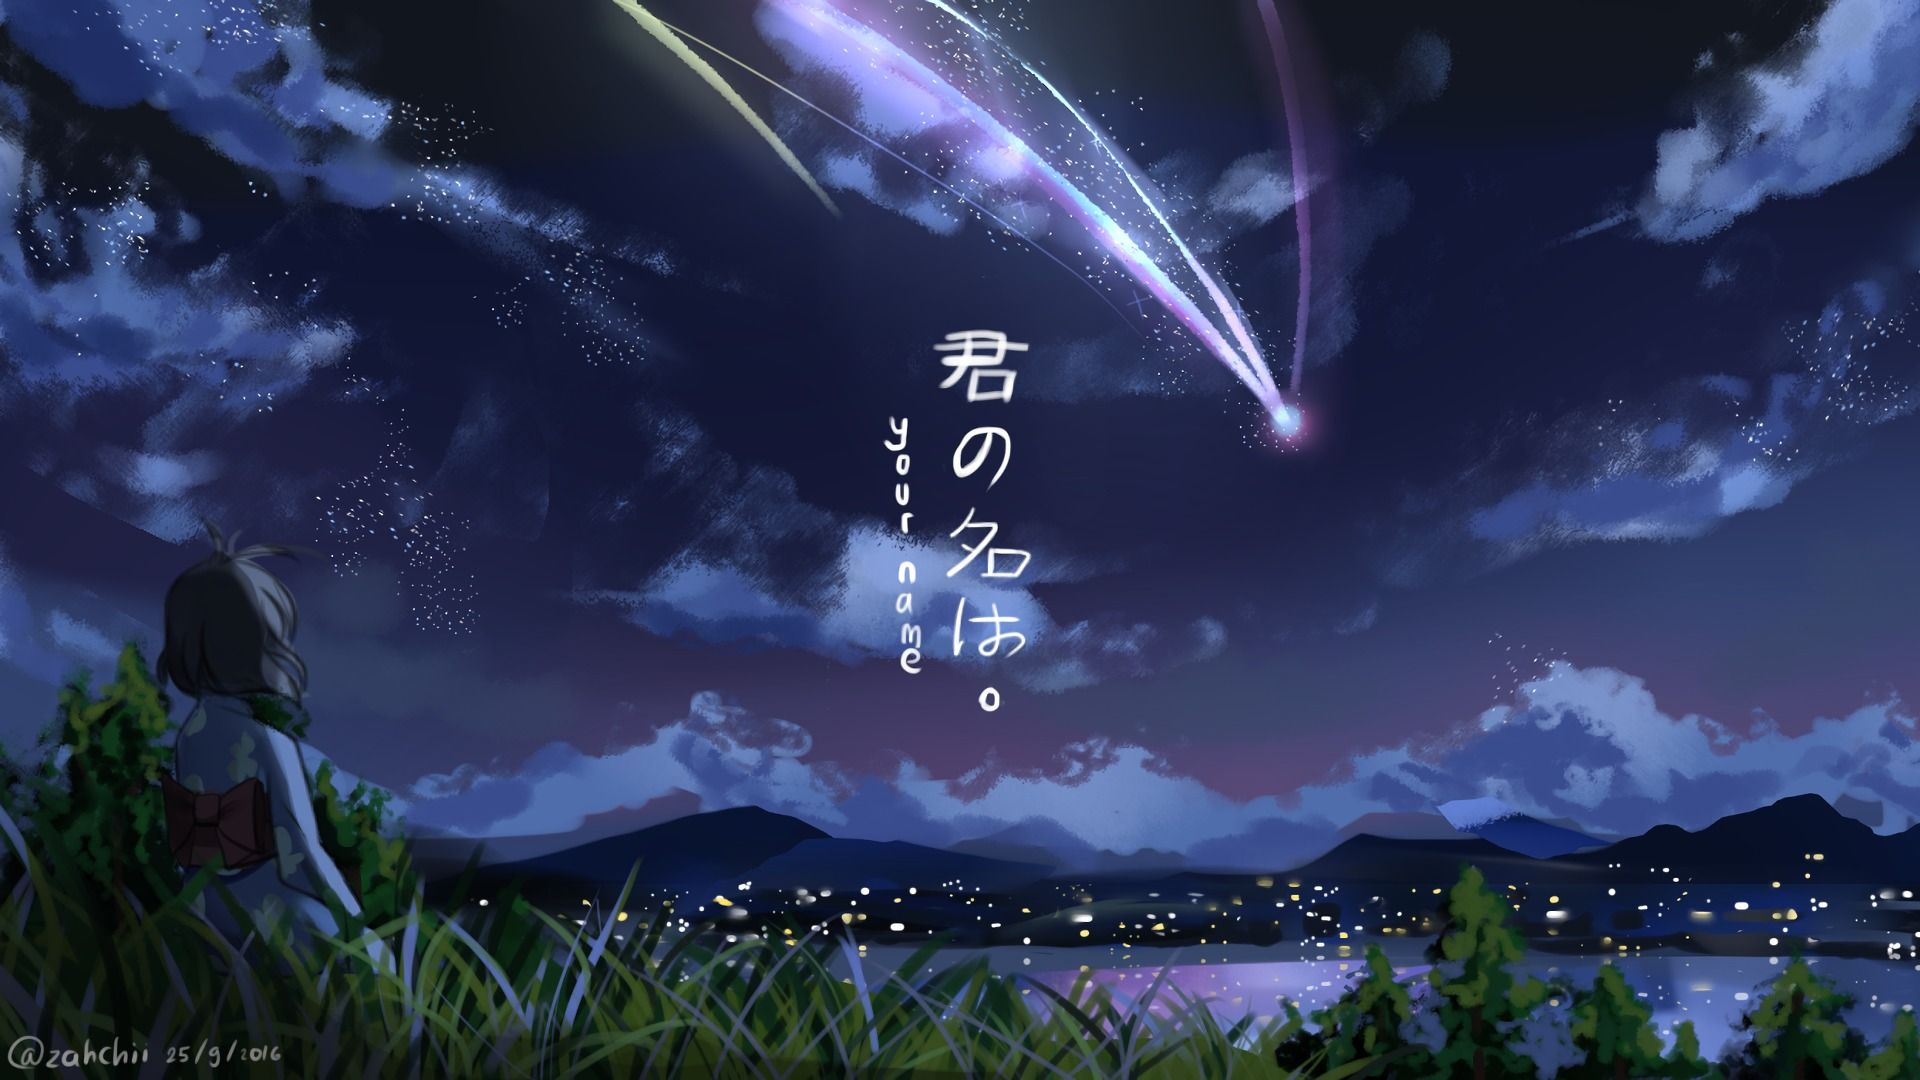 Wallpapers Anime Your Name 1920x1080 Pemandangan Anime Pemandangan Gambar